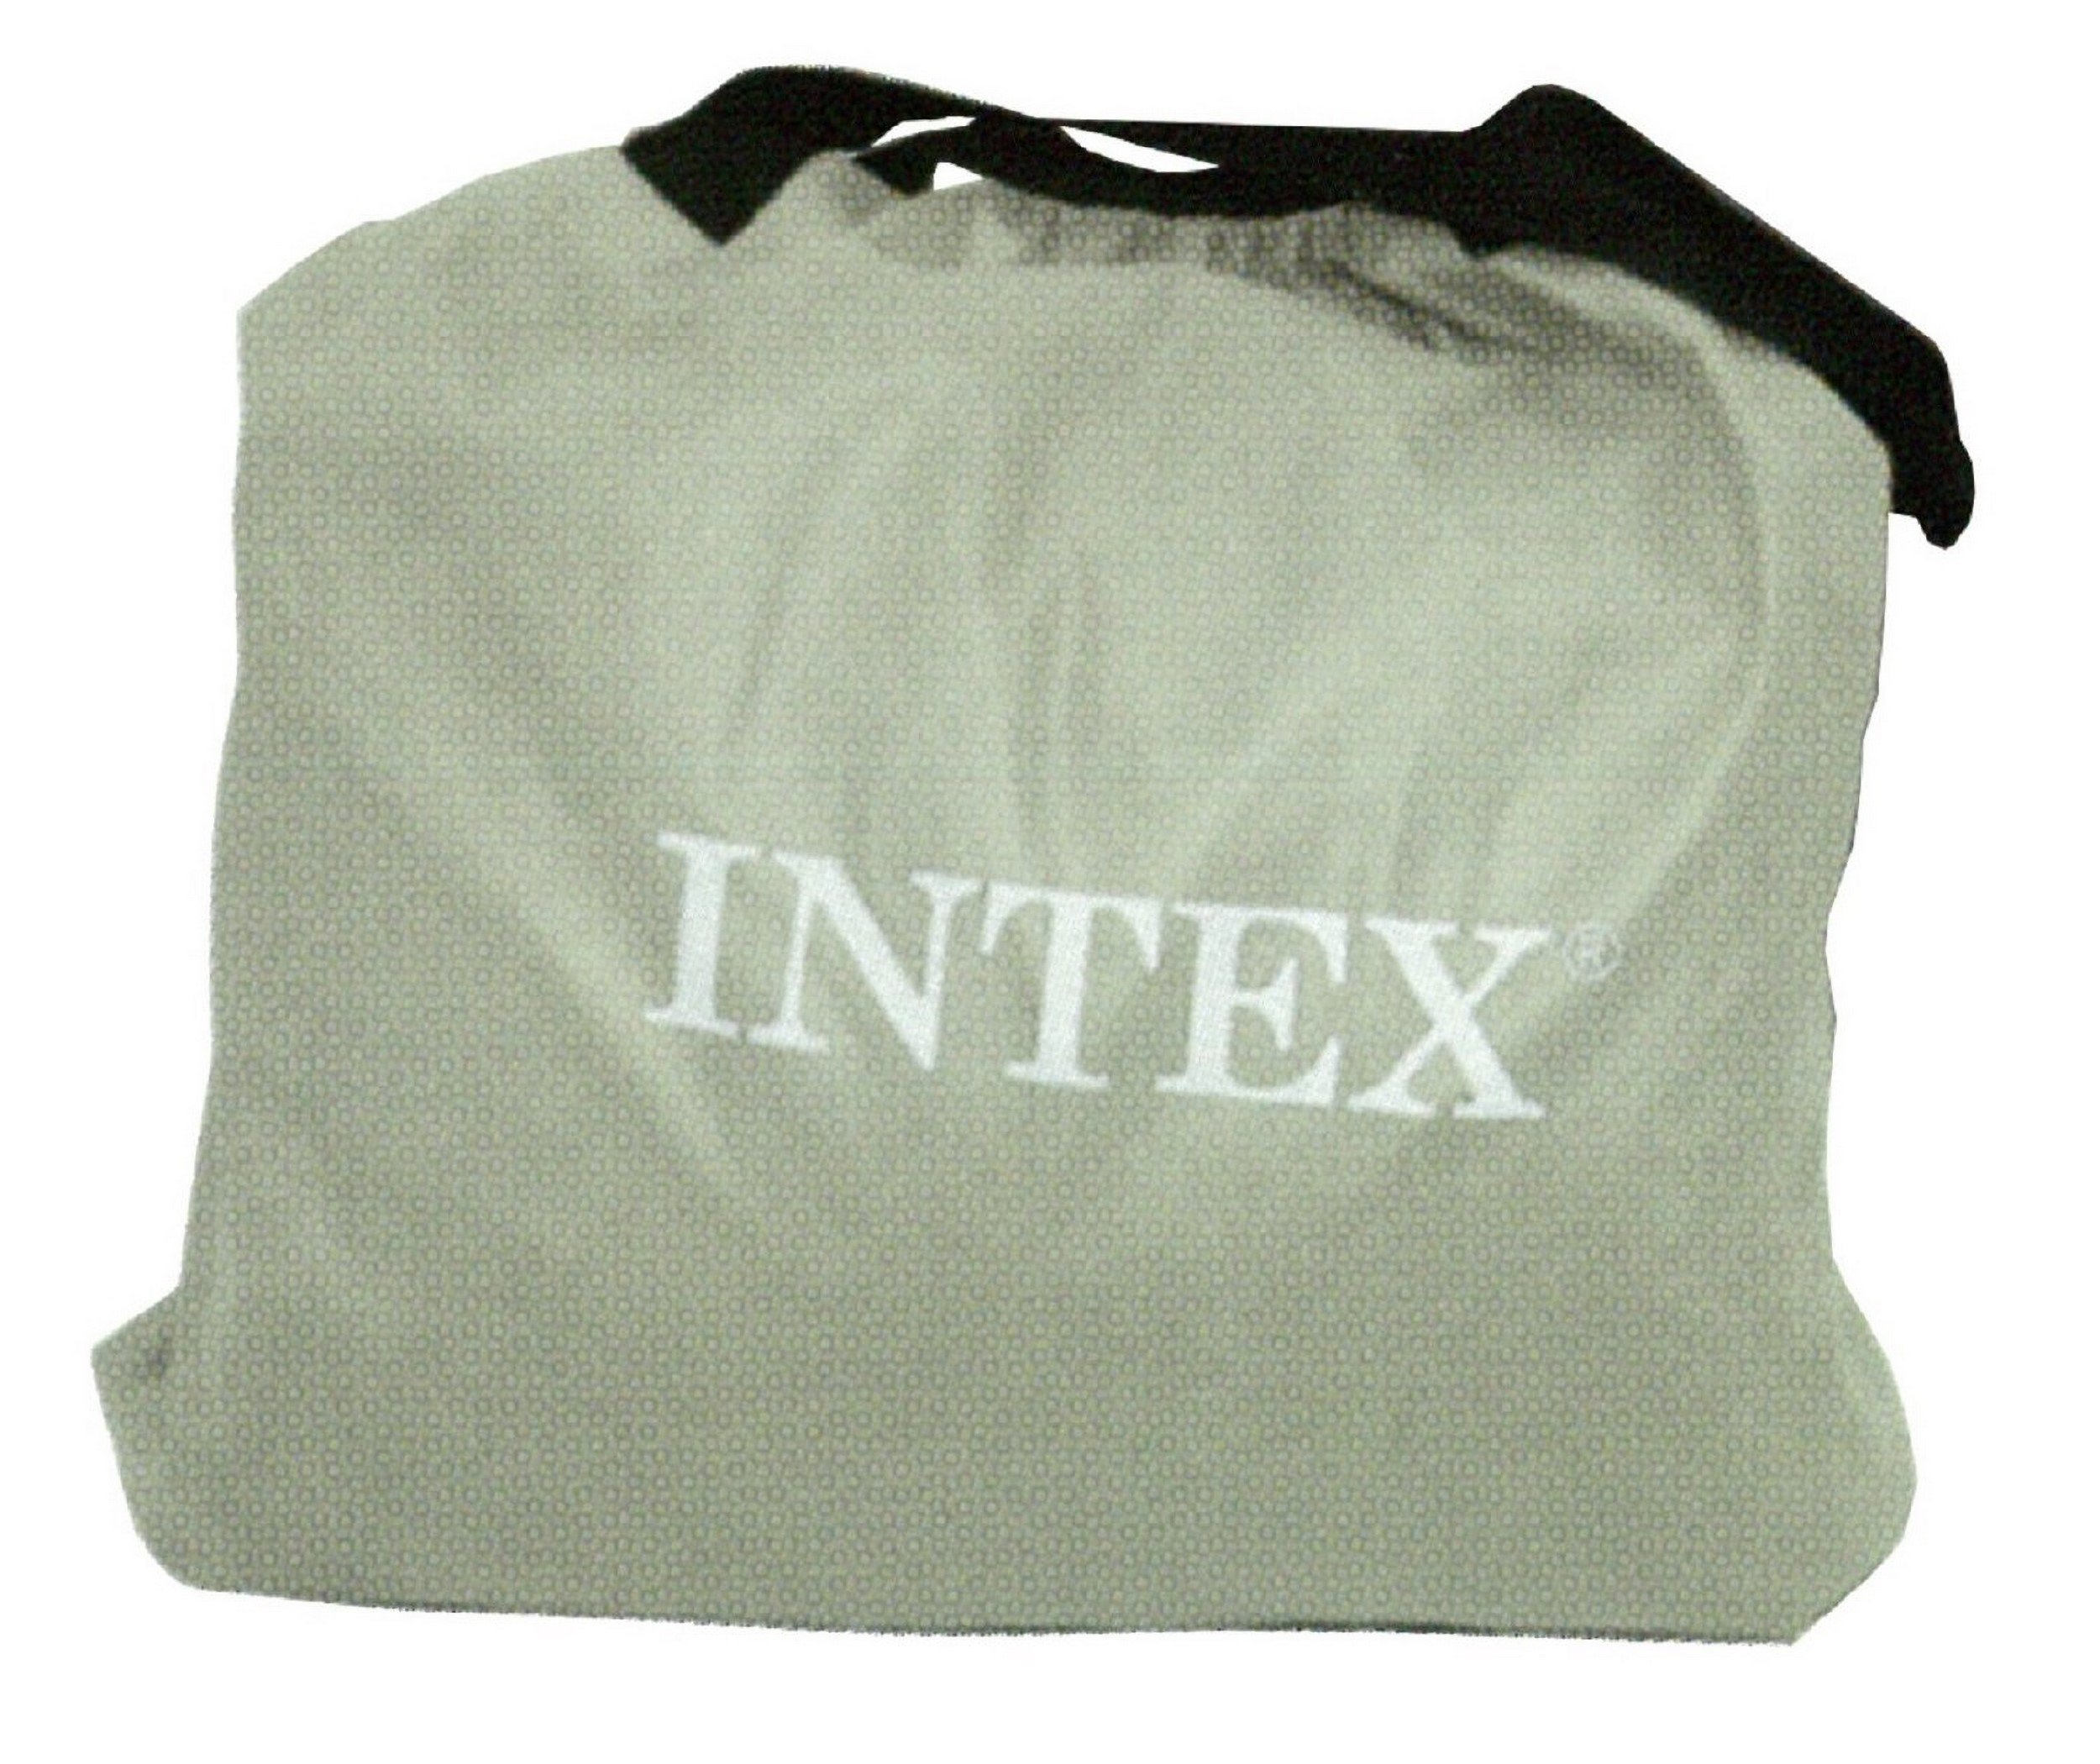 Intex Comfort Plush Elevated Dura-Beam Airbed with Built-in Electric Pump, Bed Height 18'', Twin by Intex (Image #16)